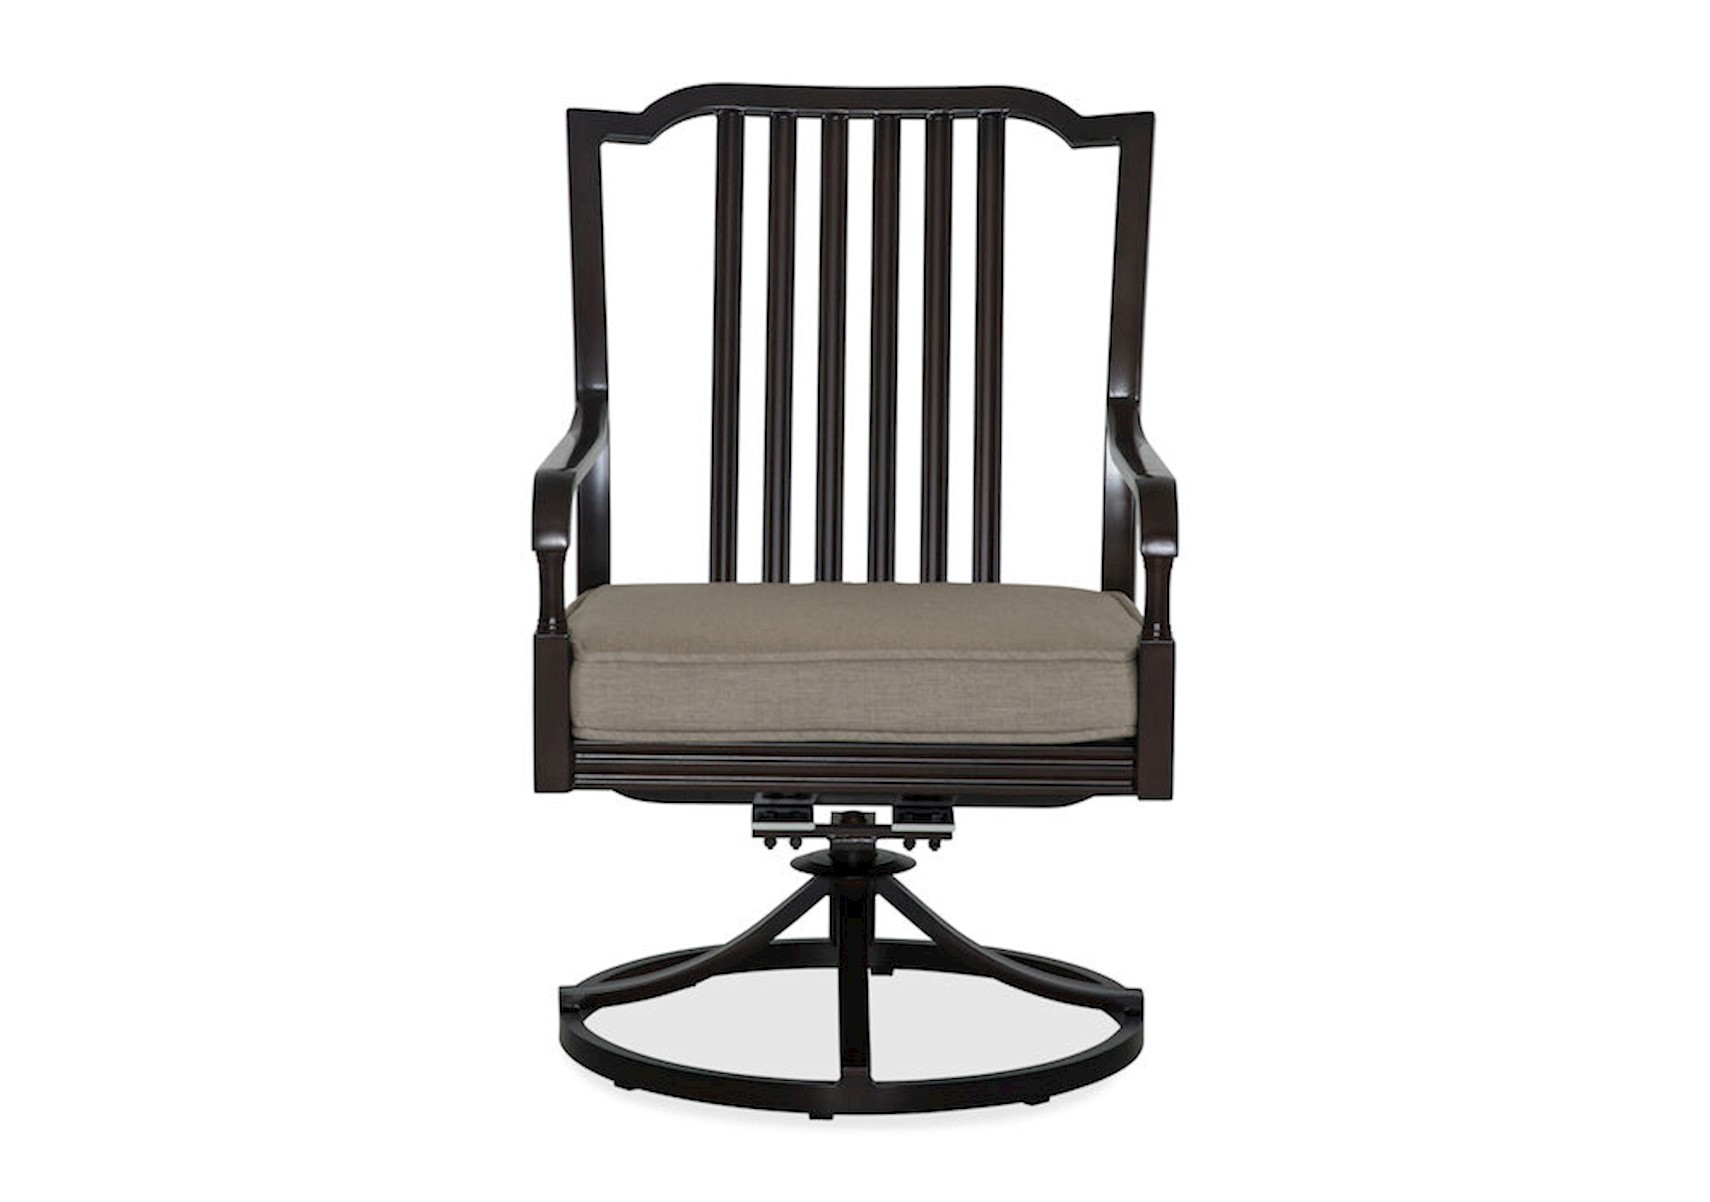 Superb Lacks River House Outdoor Swivel Chair By Paula Deen Caraccident5 Cool Chair Designs And Ideas Caraccident5Info